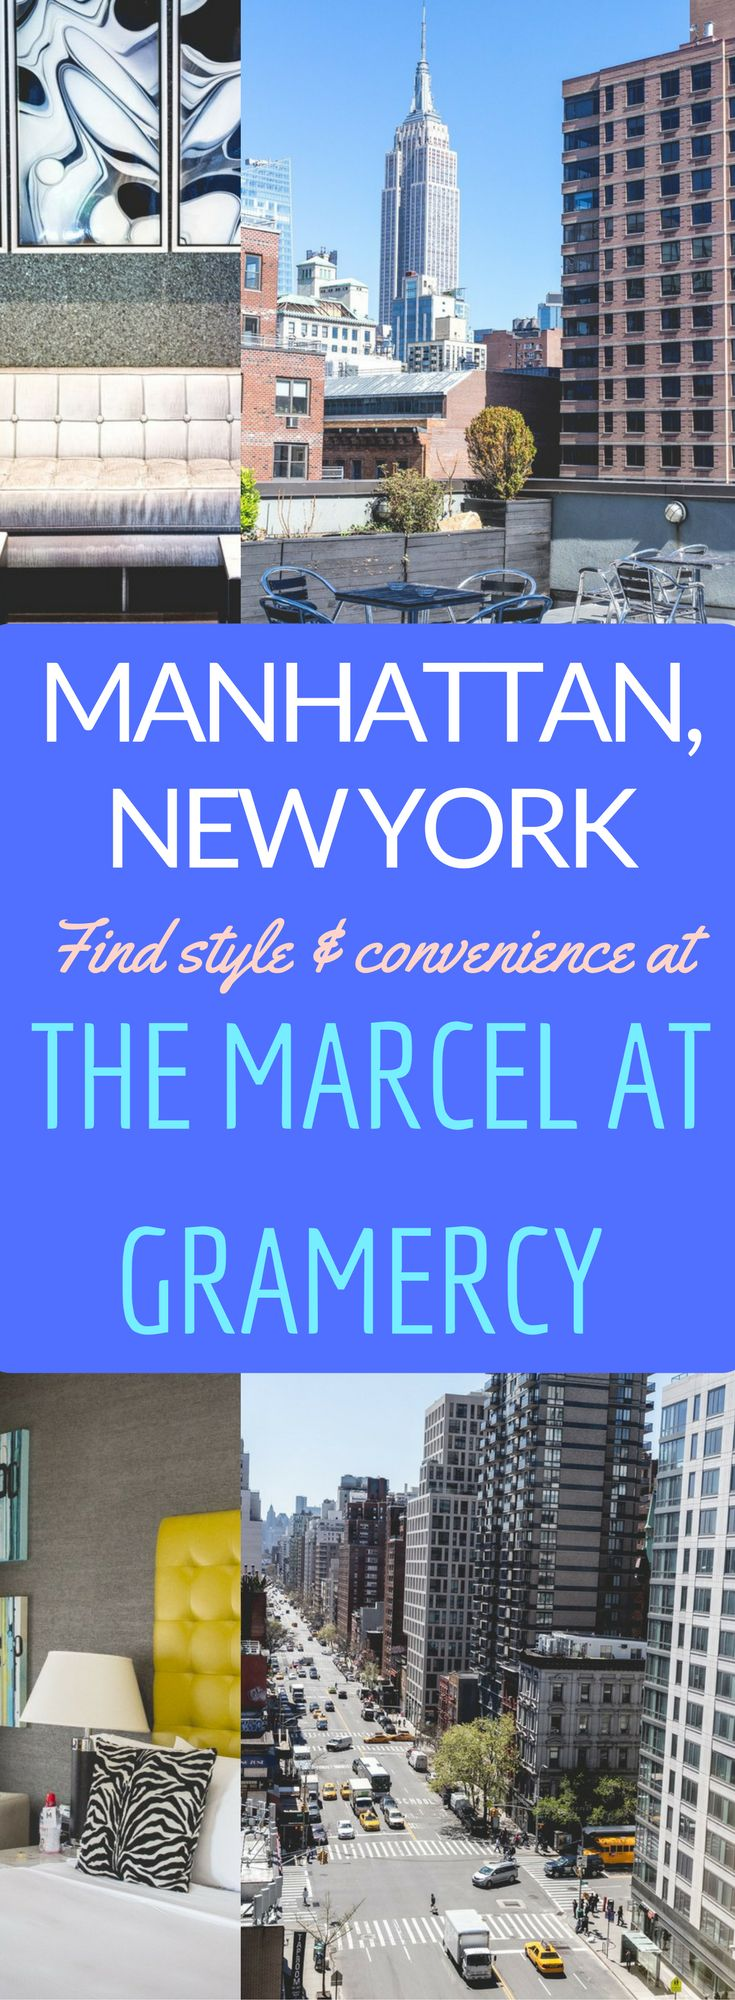 The best hotel for your next trip to New York City: The Marcel at Gramercy! Luxury hotel in New York, just blocks from Madison Square Park and the East River.